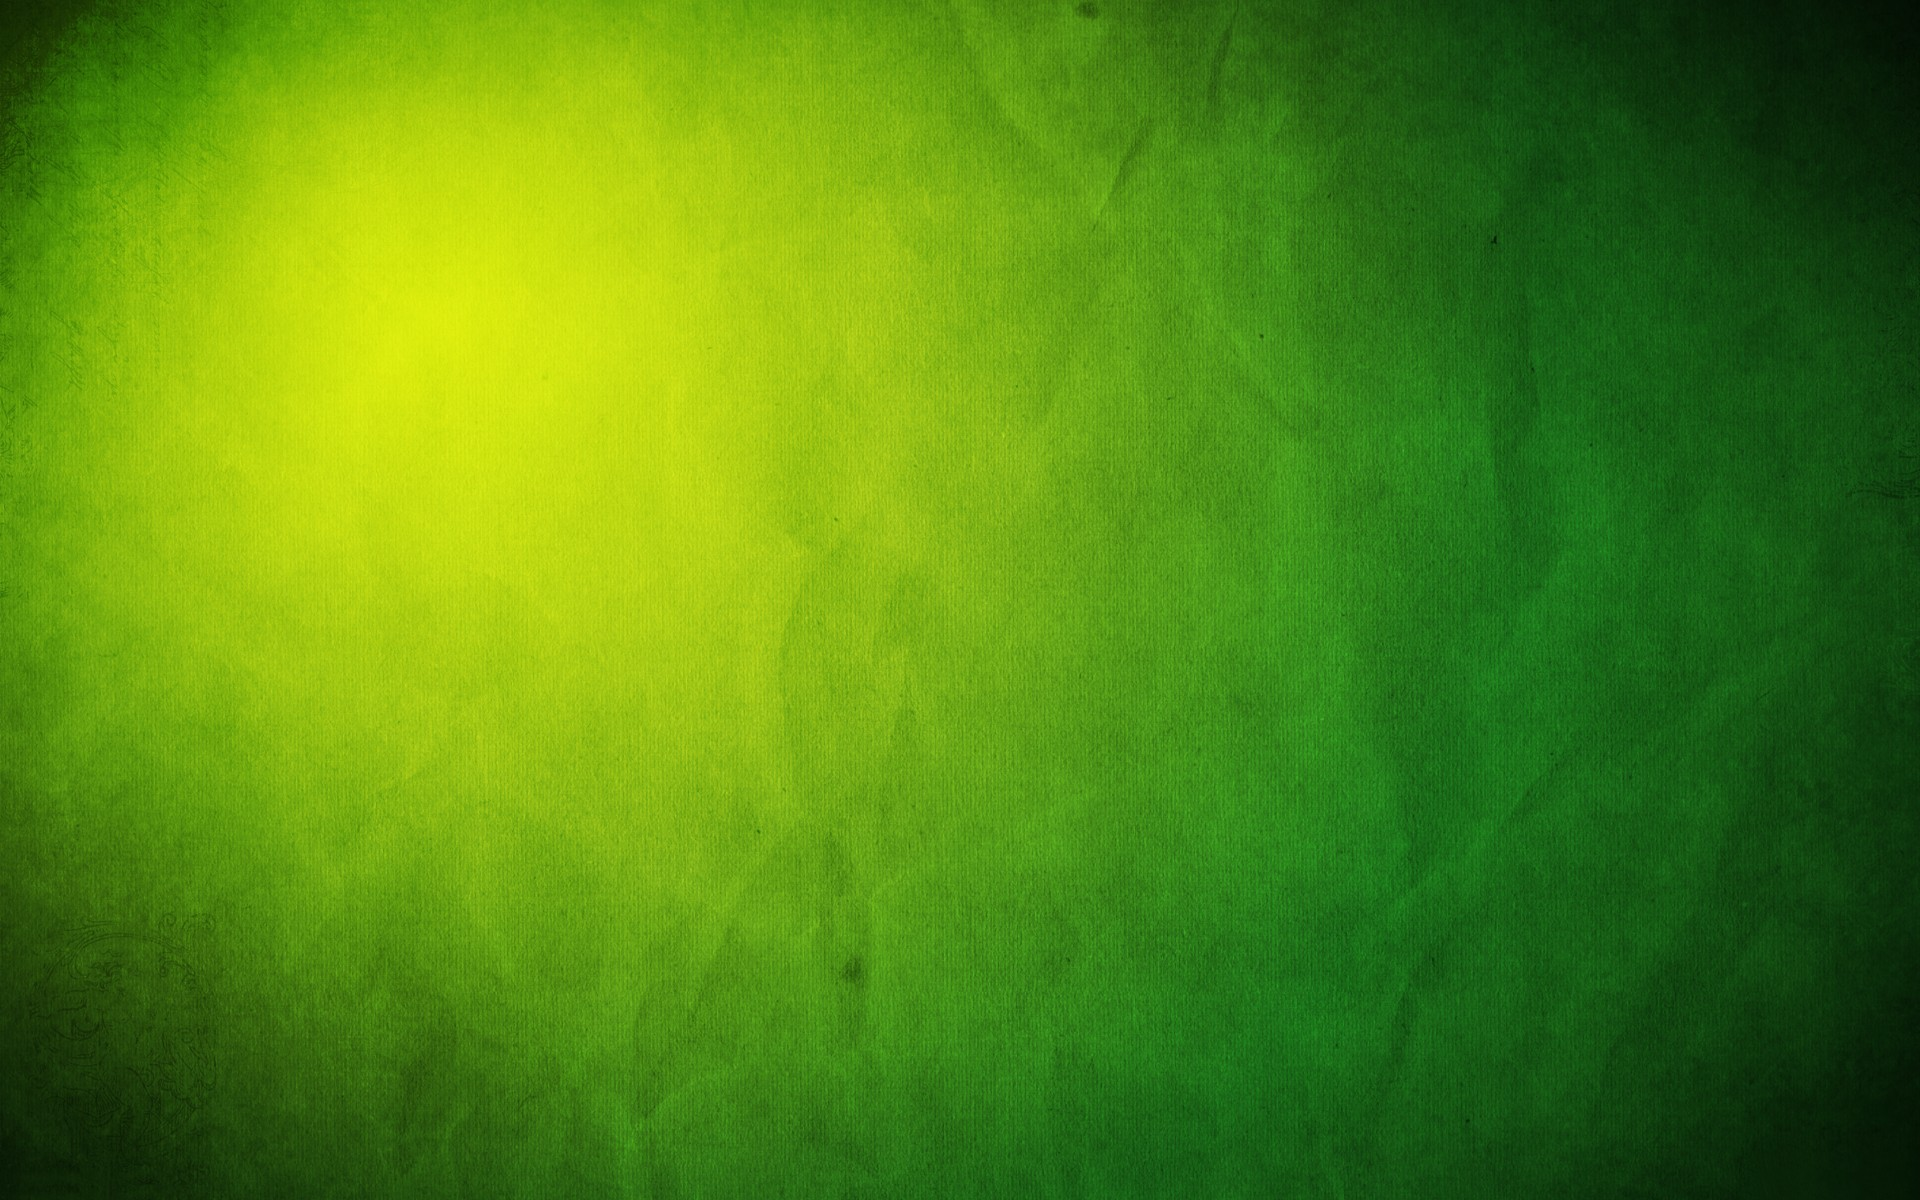 Light Green Abstract Background Background 1 HD Wallpapers